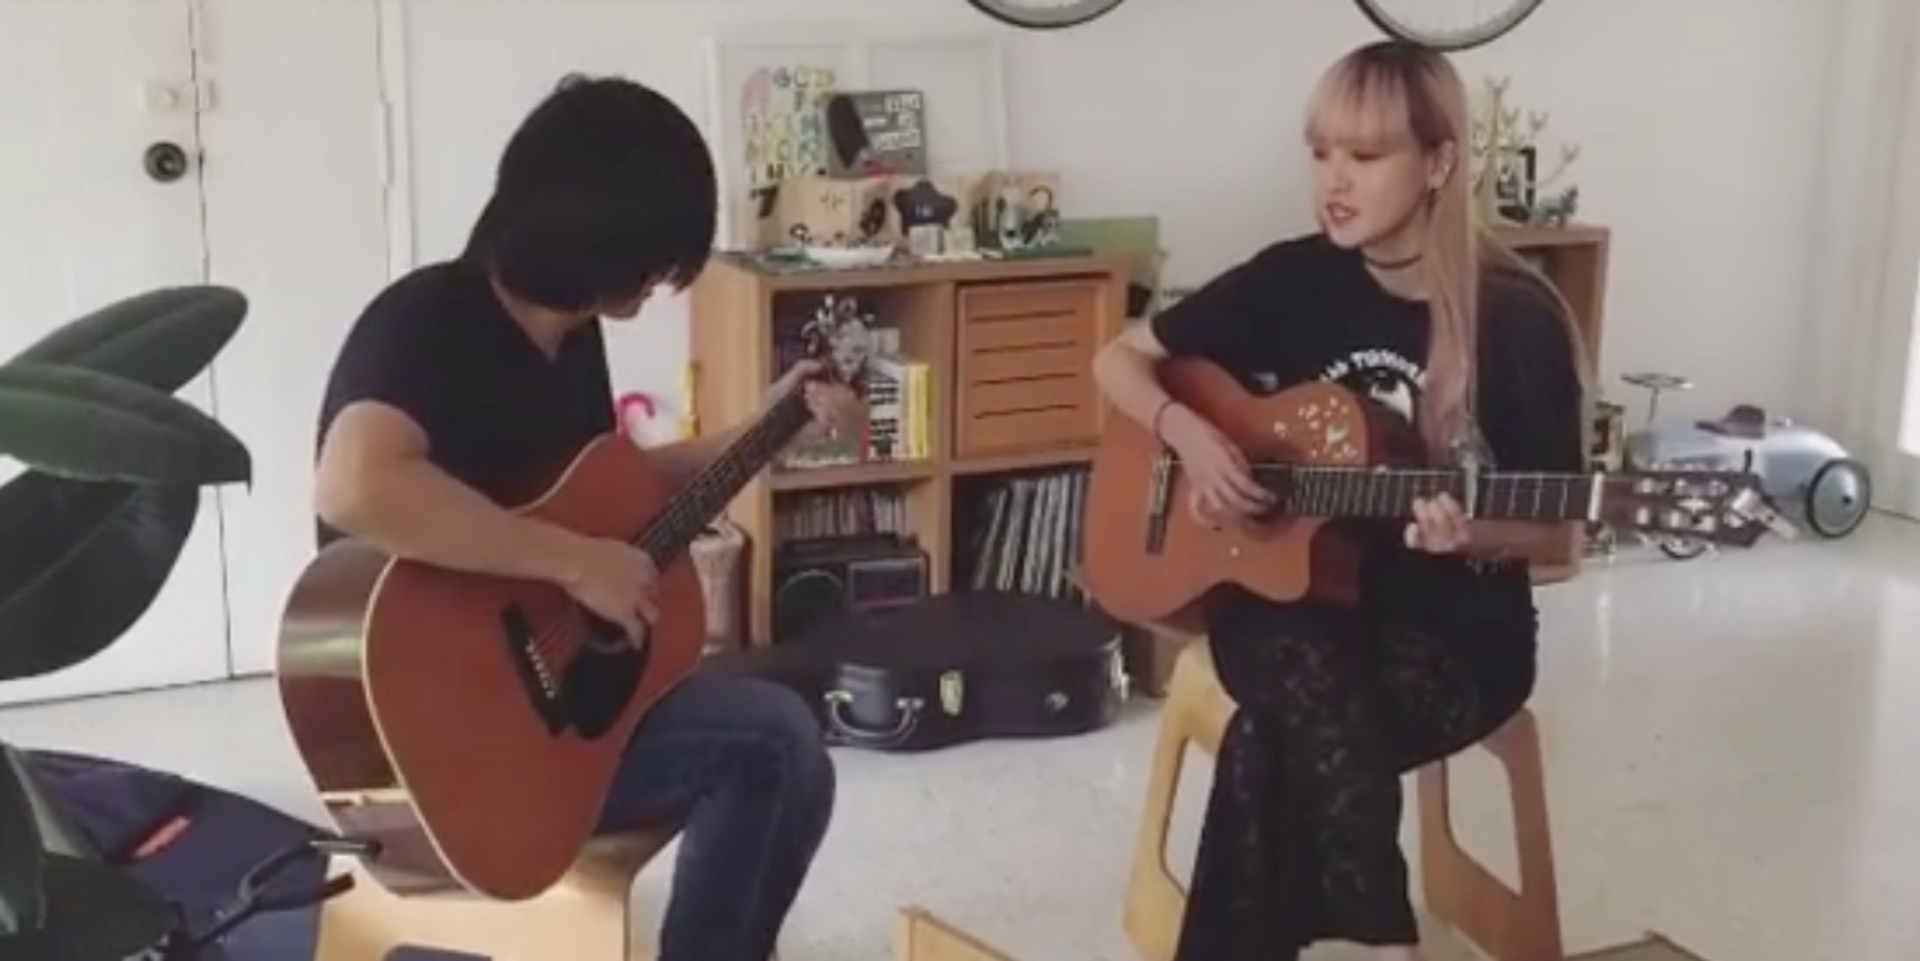 Hanging Up The Moon and aspidistrafly team up for a sublime cover of a Leonard Cohen classic — watch